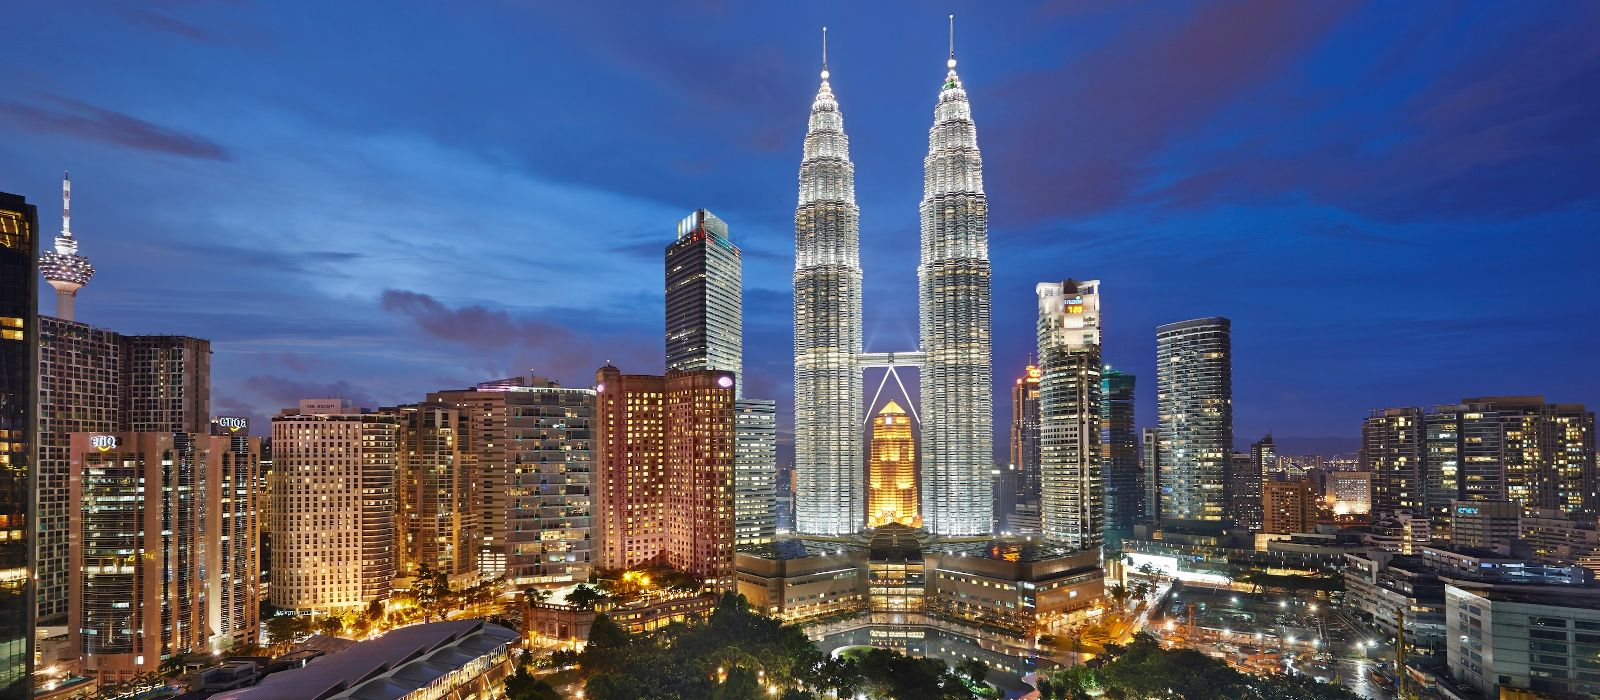 tipping tour guides in malaysia